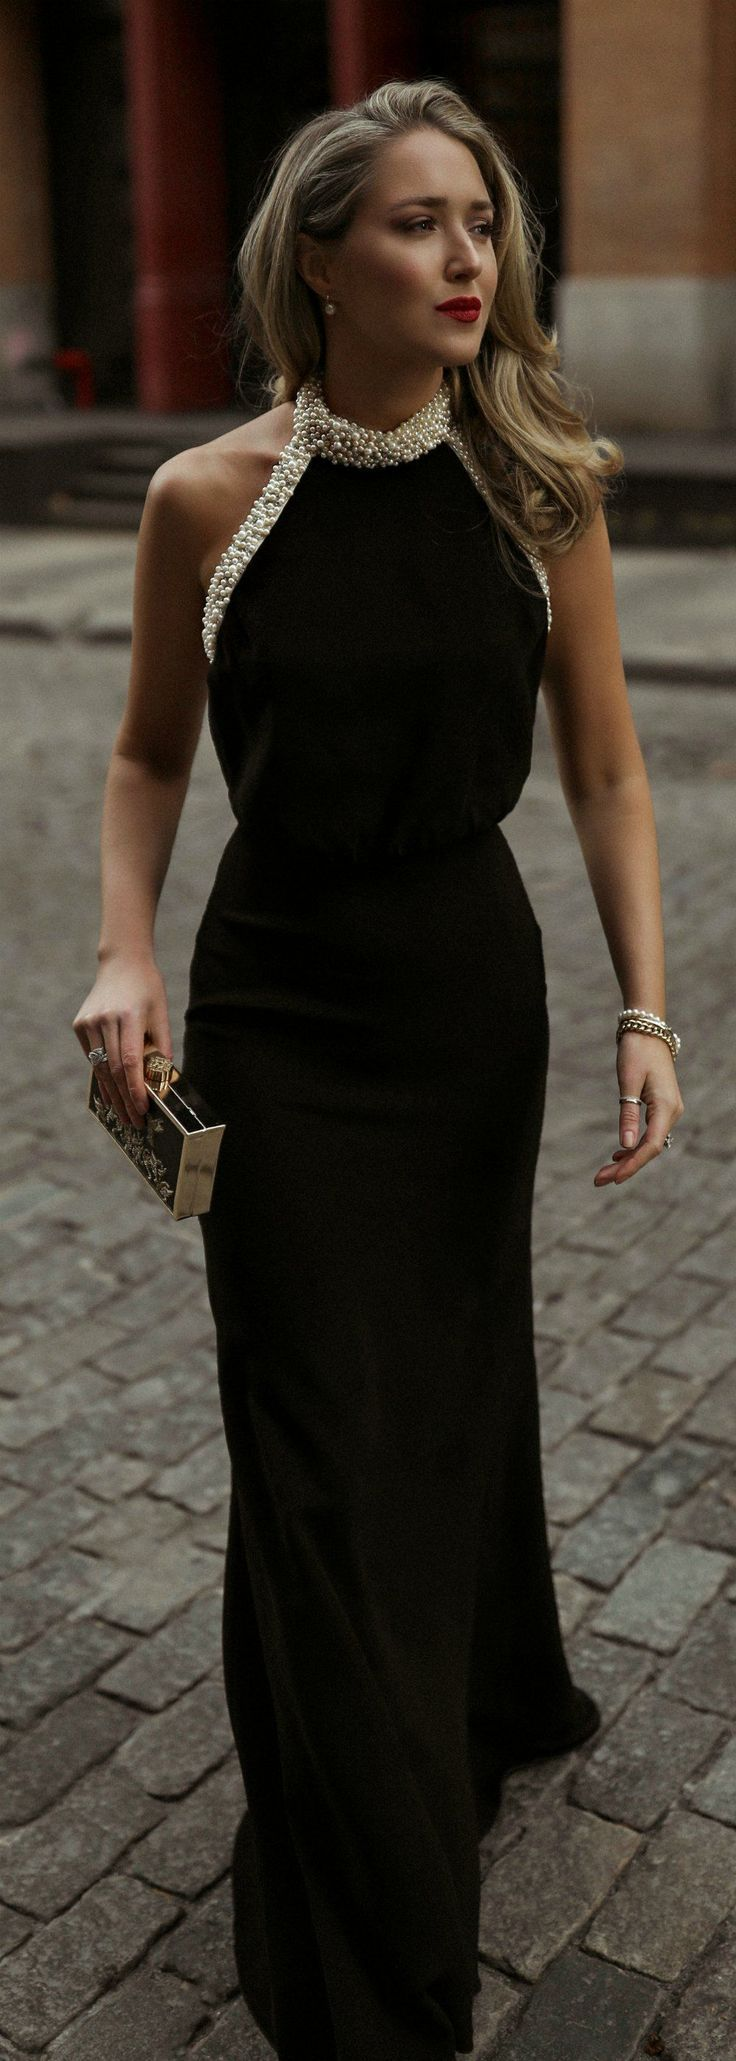 30 Dresses 30 Days Day 17 Corporate Charity Black Backless Gown With A Glamorous Pearl Encrusted Halter Neck Blac Long Black Dress Gala Dresses Fashion [ 2061 x 736 Pixel ]